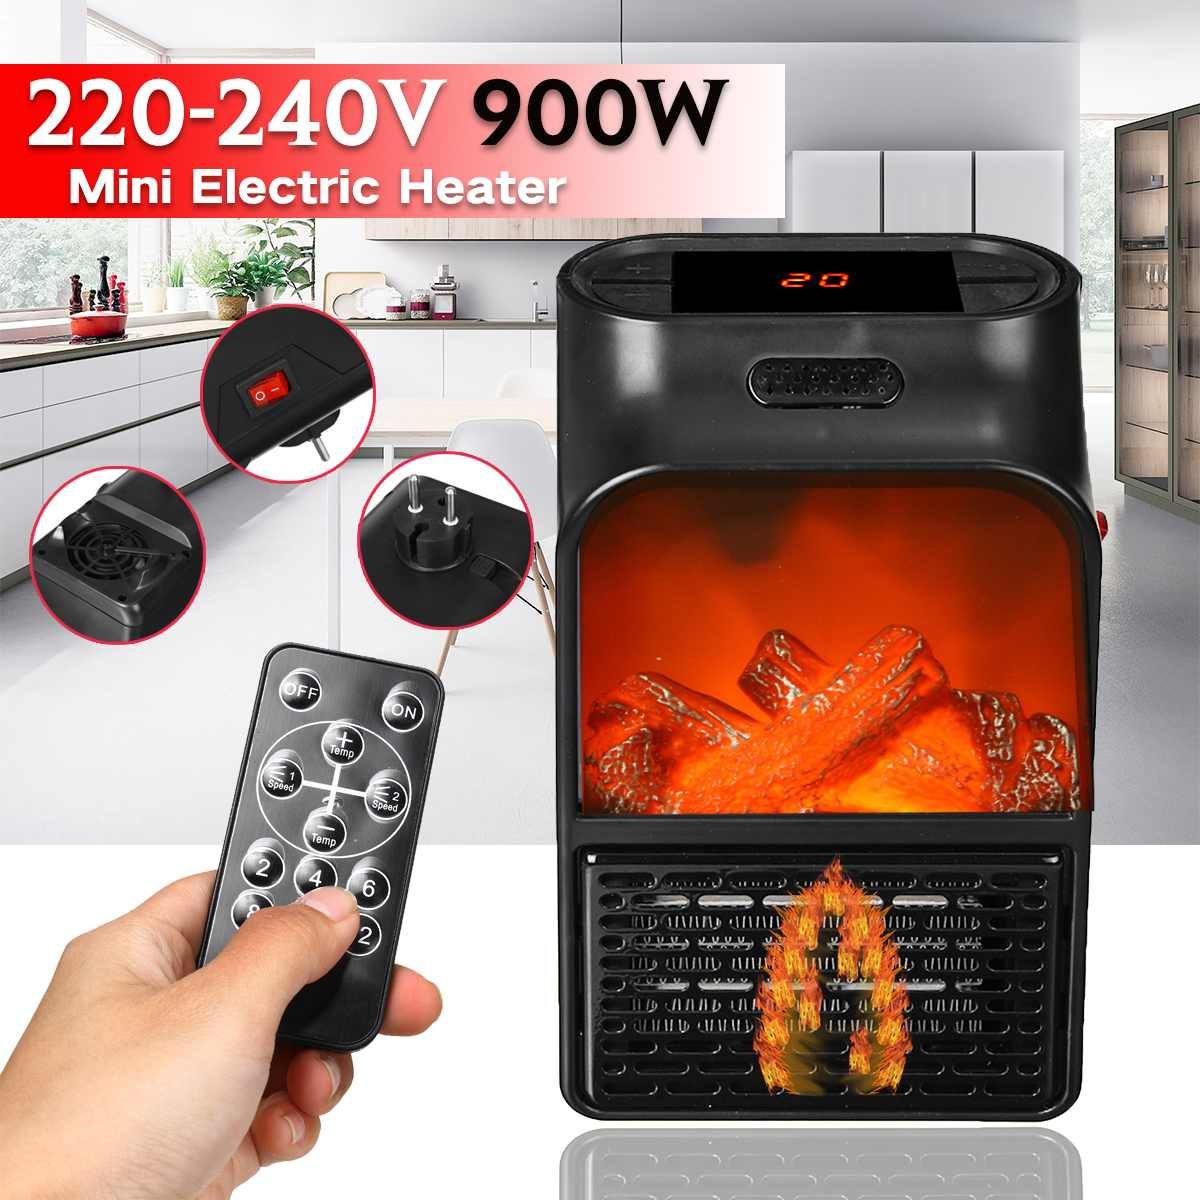 900W Mini Electric Heater Portable Plug-in Electric Fan Space Room Heater Air Heating Space Winter Warmer Fan Remote Control(China)